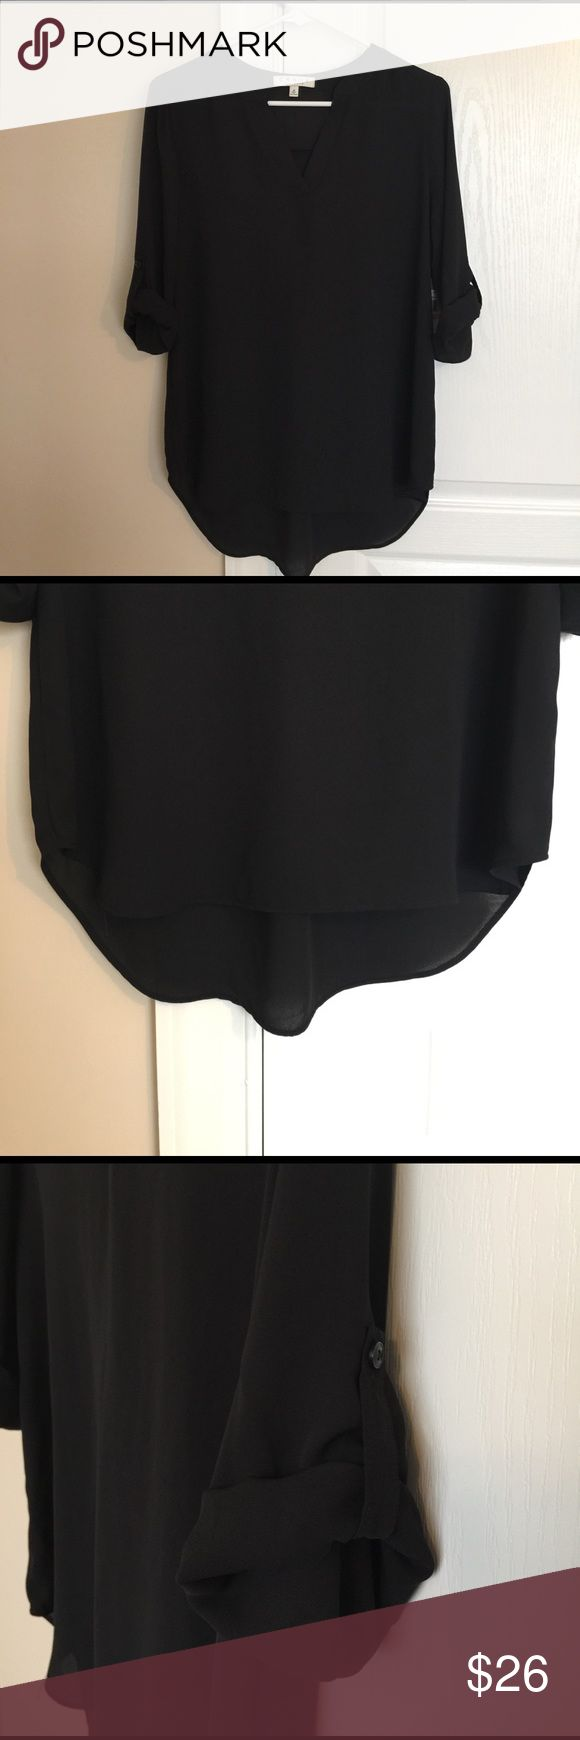 NWT Chaus 3/4 Roll Sleeve Black Tunic NWT Chaus 3/4 Roll Sleeve Black Tunic. Split neck Tunic with rolled sleeves and high/low hem, semi sheer.  Pairs great with skinny jeans or leggings Chaus Tops Tunics